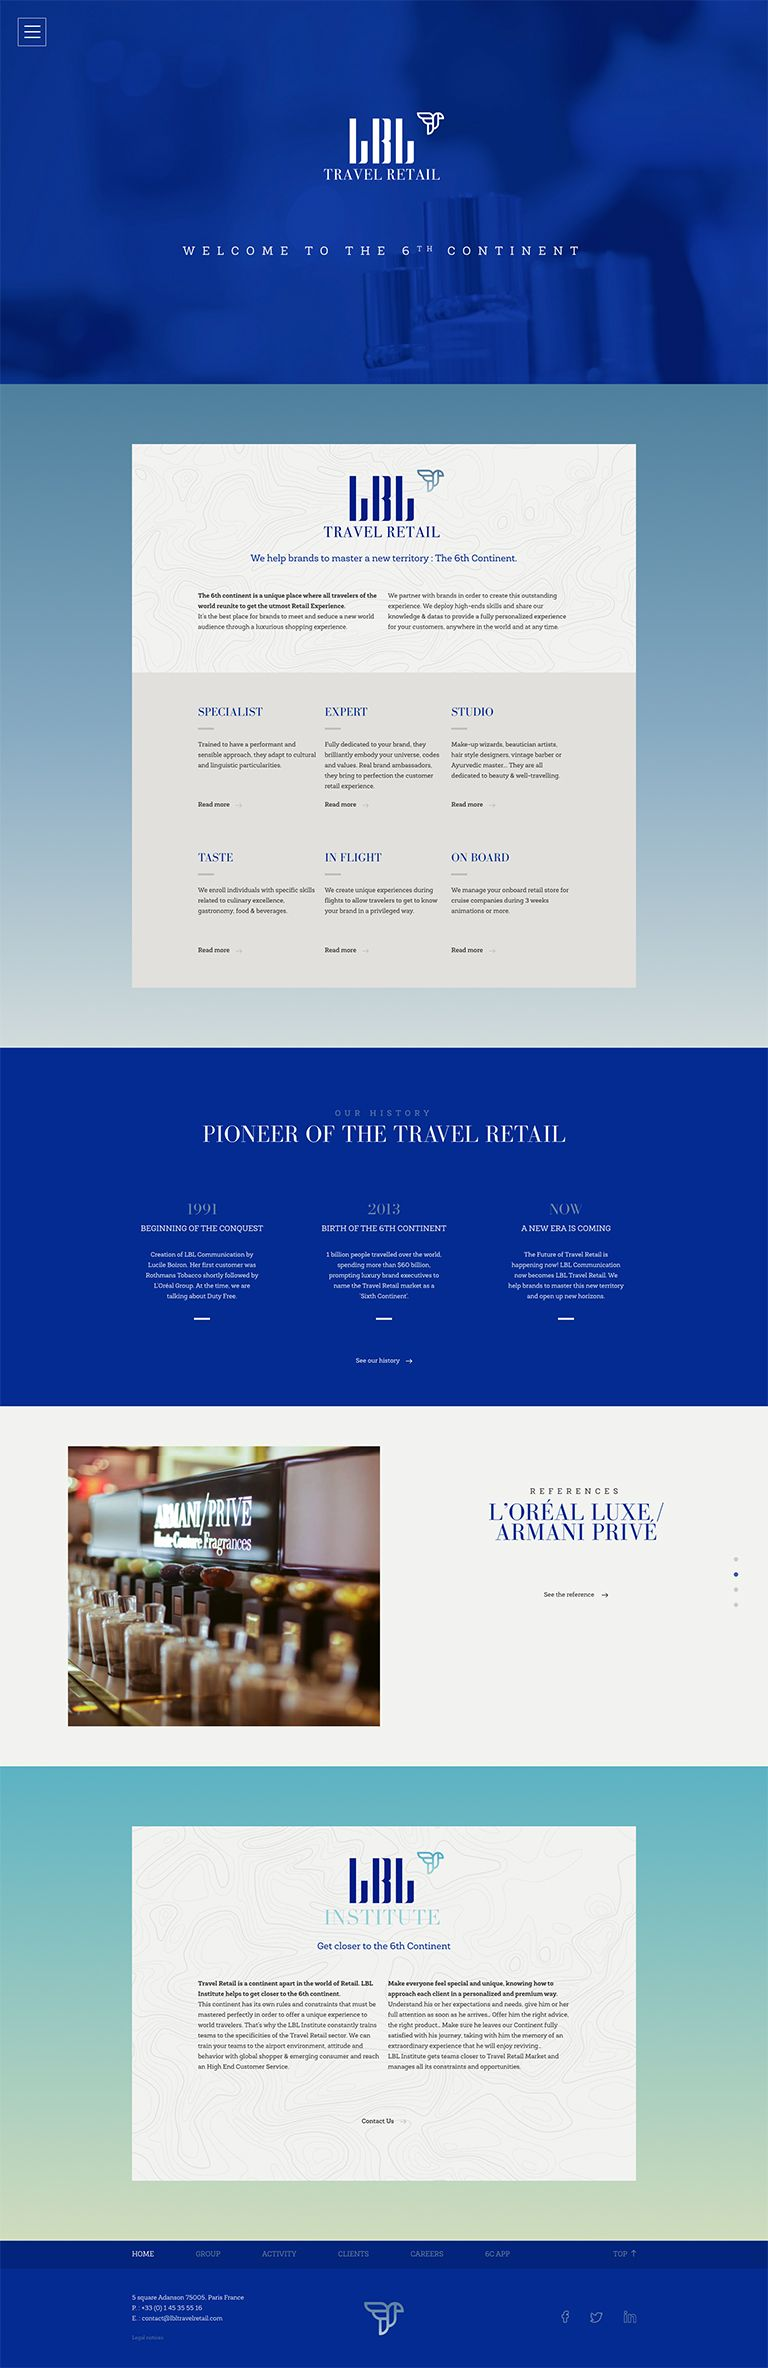 LBL Travel Retail Homepage